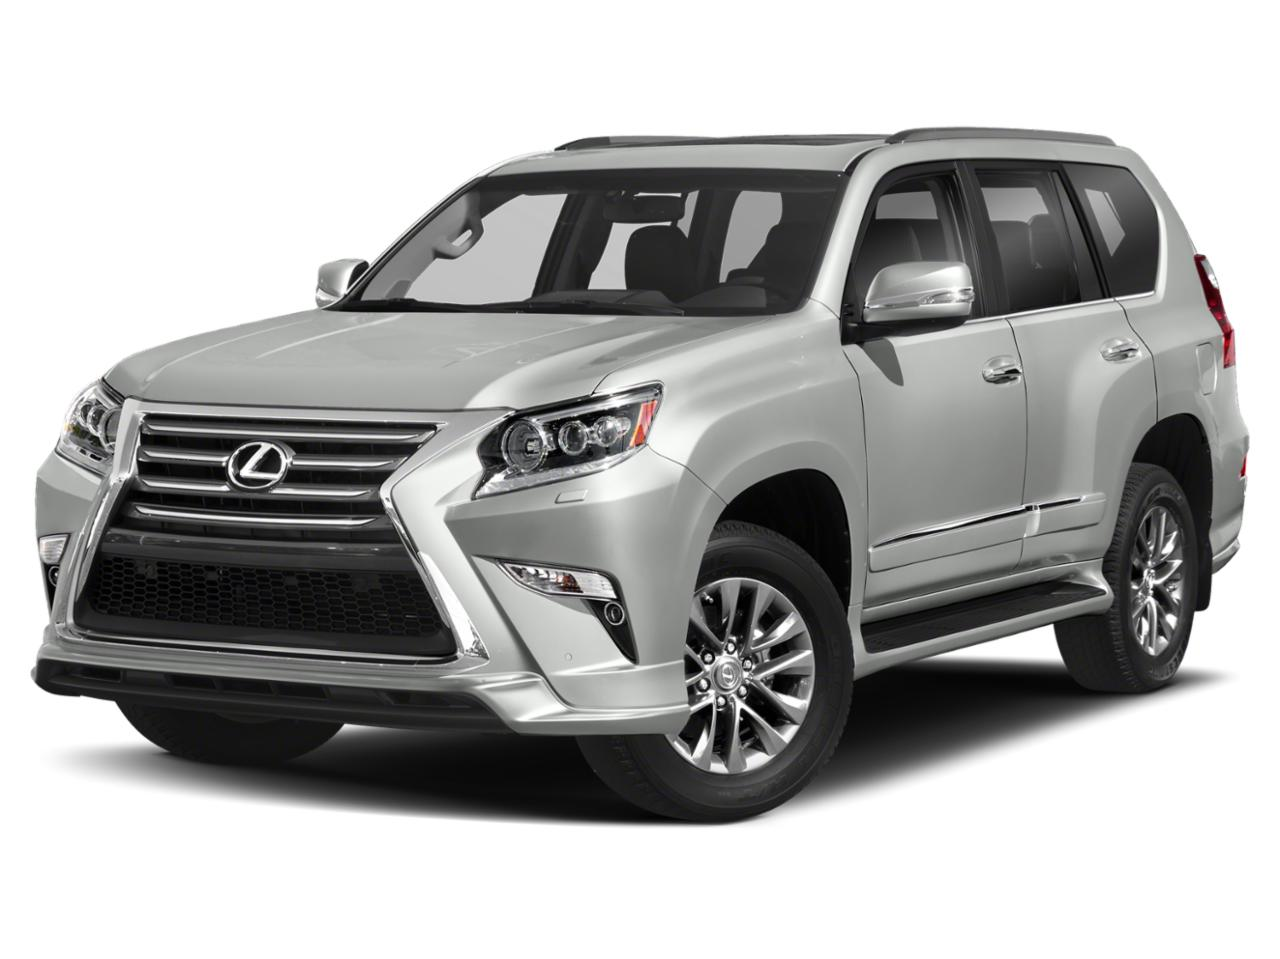 2018 Lexus GX 460 Vehicle Photo in Manassas, VA 20109